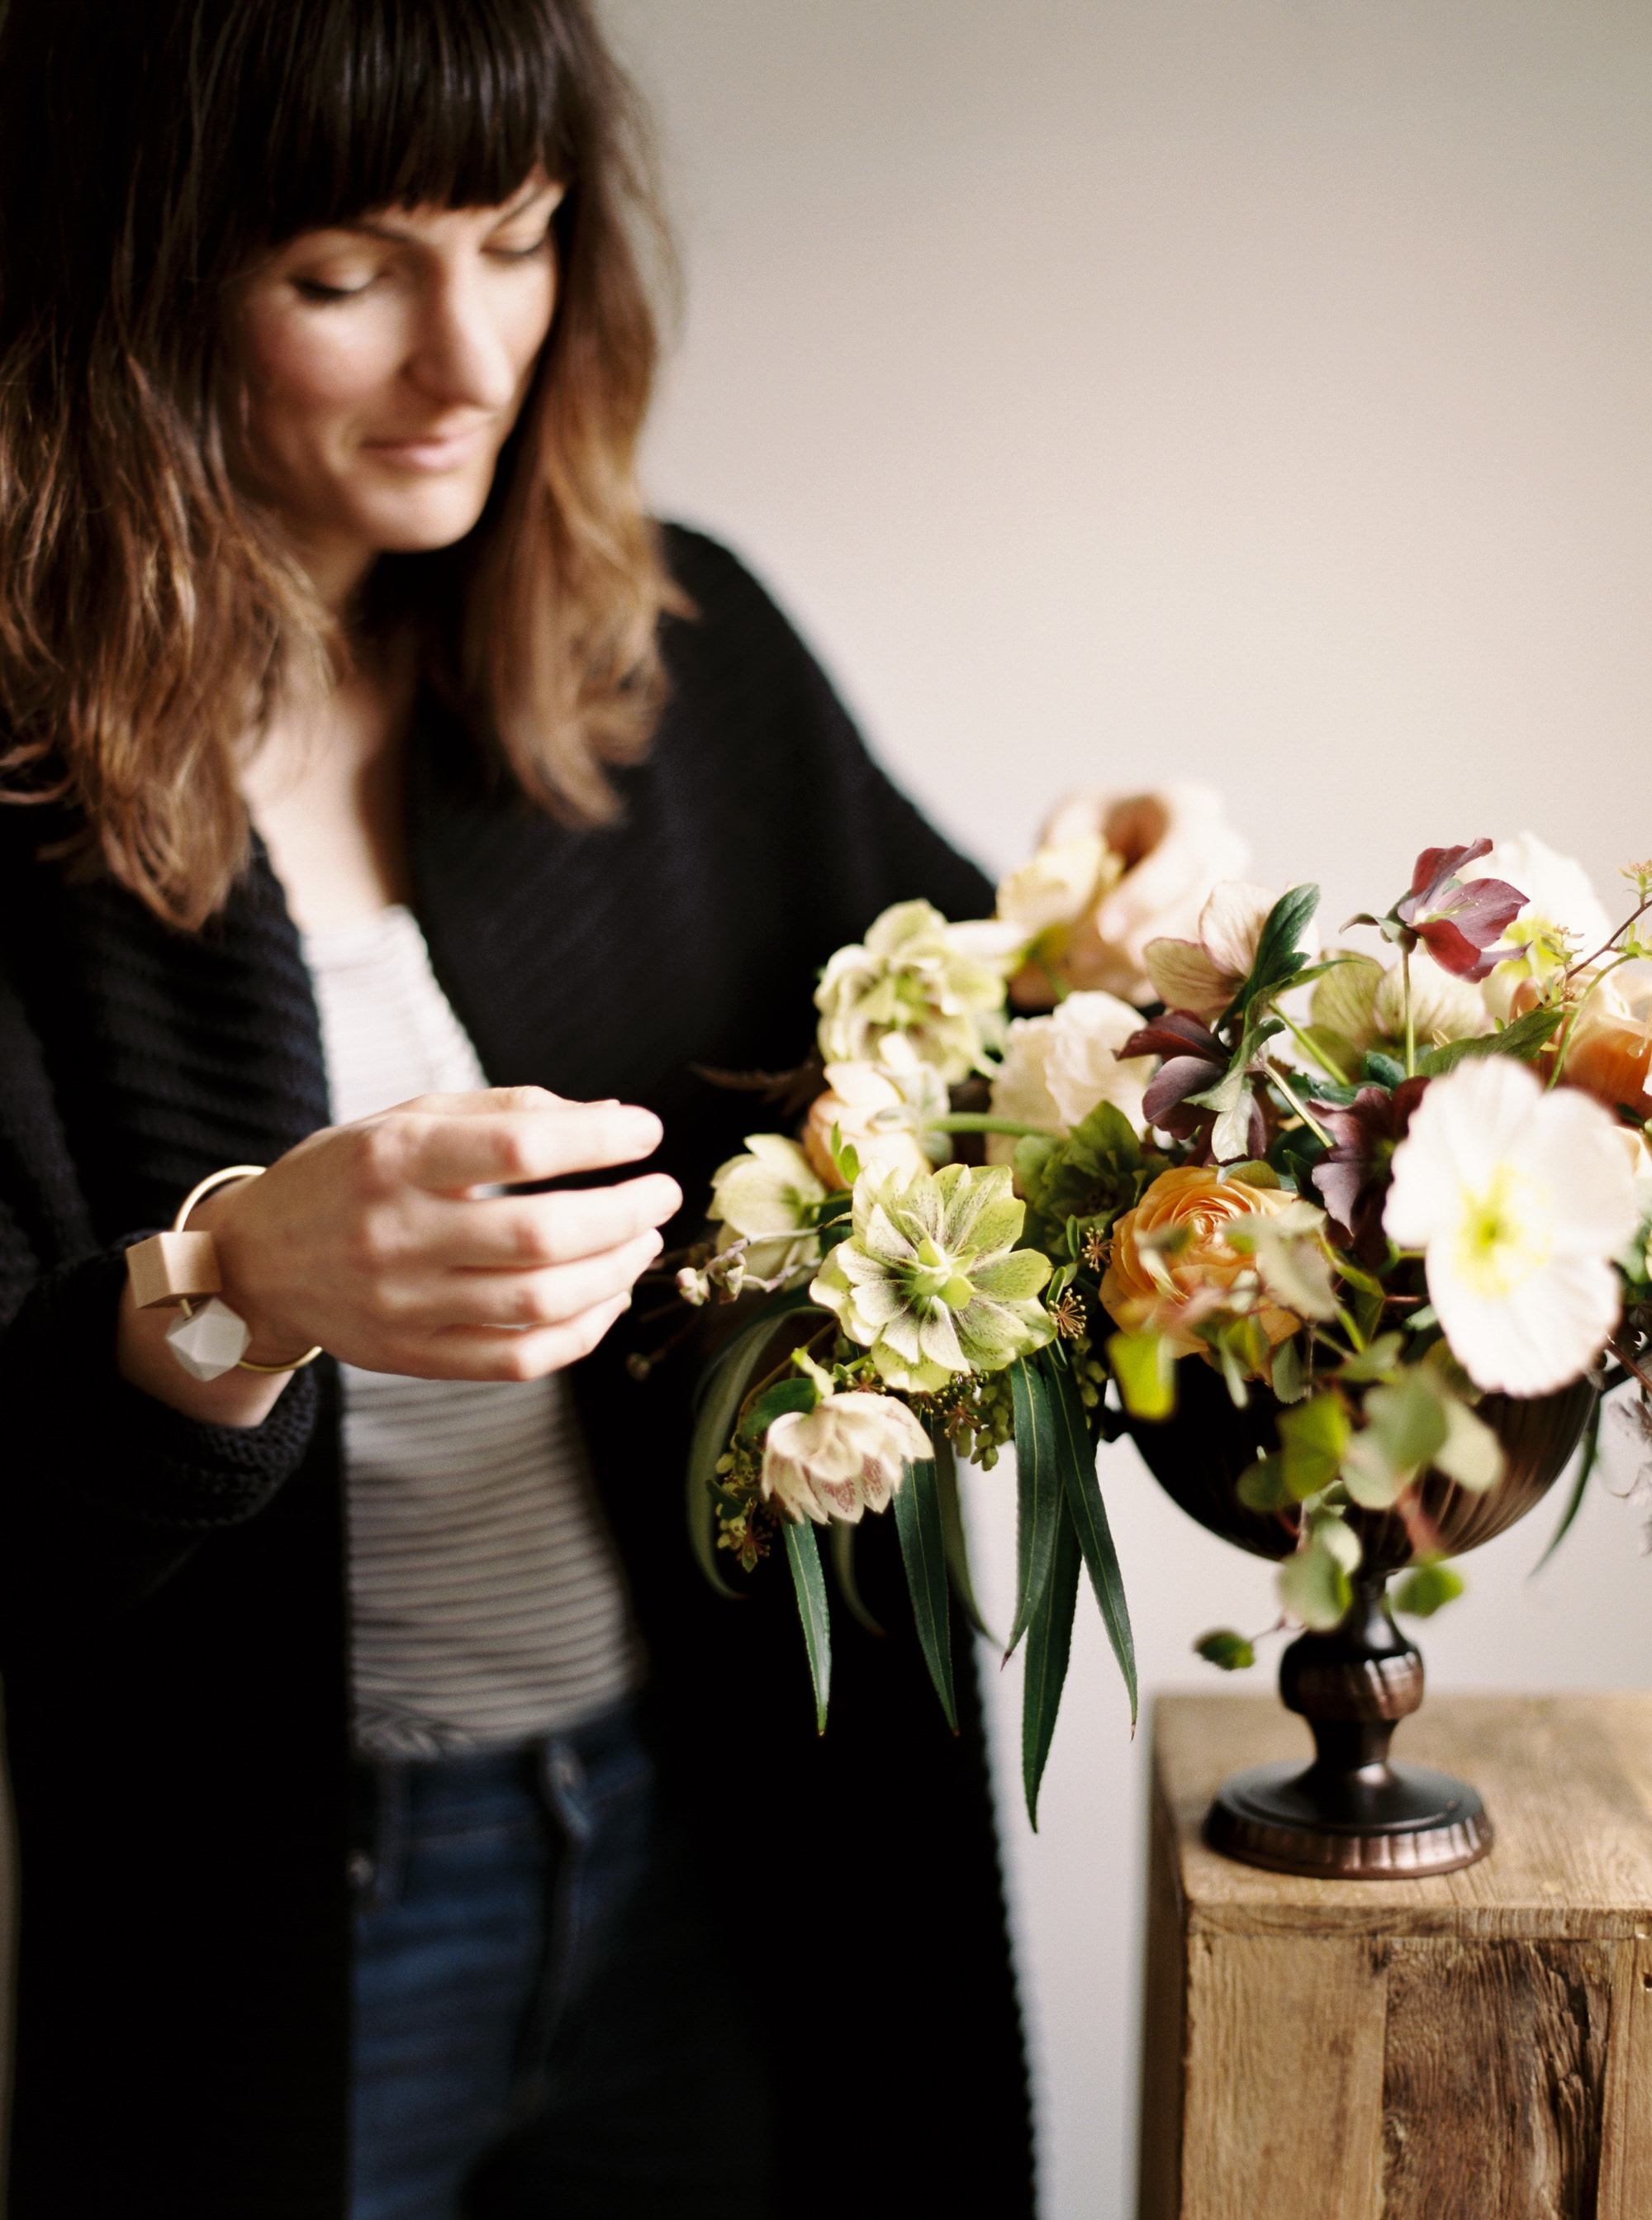 Hi there. - I'm Katie,a Seattle-based floral designer and maker of things, bringing a design-obsessed eye to local and seasonal blooms. I love color, texture, big installations, modern lines, wearable flowers and doing something different. Currently, I'm available for weddings, events and editorial work.My love for design, craft and the natural world serendipitously converged in 2014 when I took up a floral assistant side gig while working in the nonprofit sector--flowers and I have been going steady ever since. While my personal favorites are scabiosa and black hellebore--I'm also a proud member of the #carnationappreciationsociety and encourage you to give Chabauds a chance.I live in Seattle's Capitol Hill neighborhood with my dog Lou and too many houseplants. By day, I manage an in-house creative team at a Seattle-based online retailer.Permanently on call to flower RiRi + Drake's wedding.